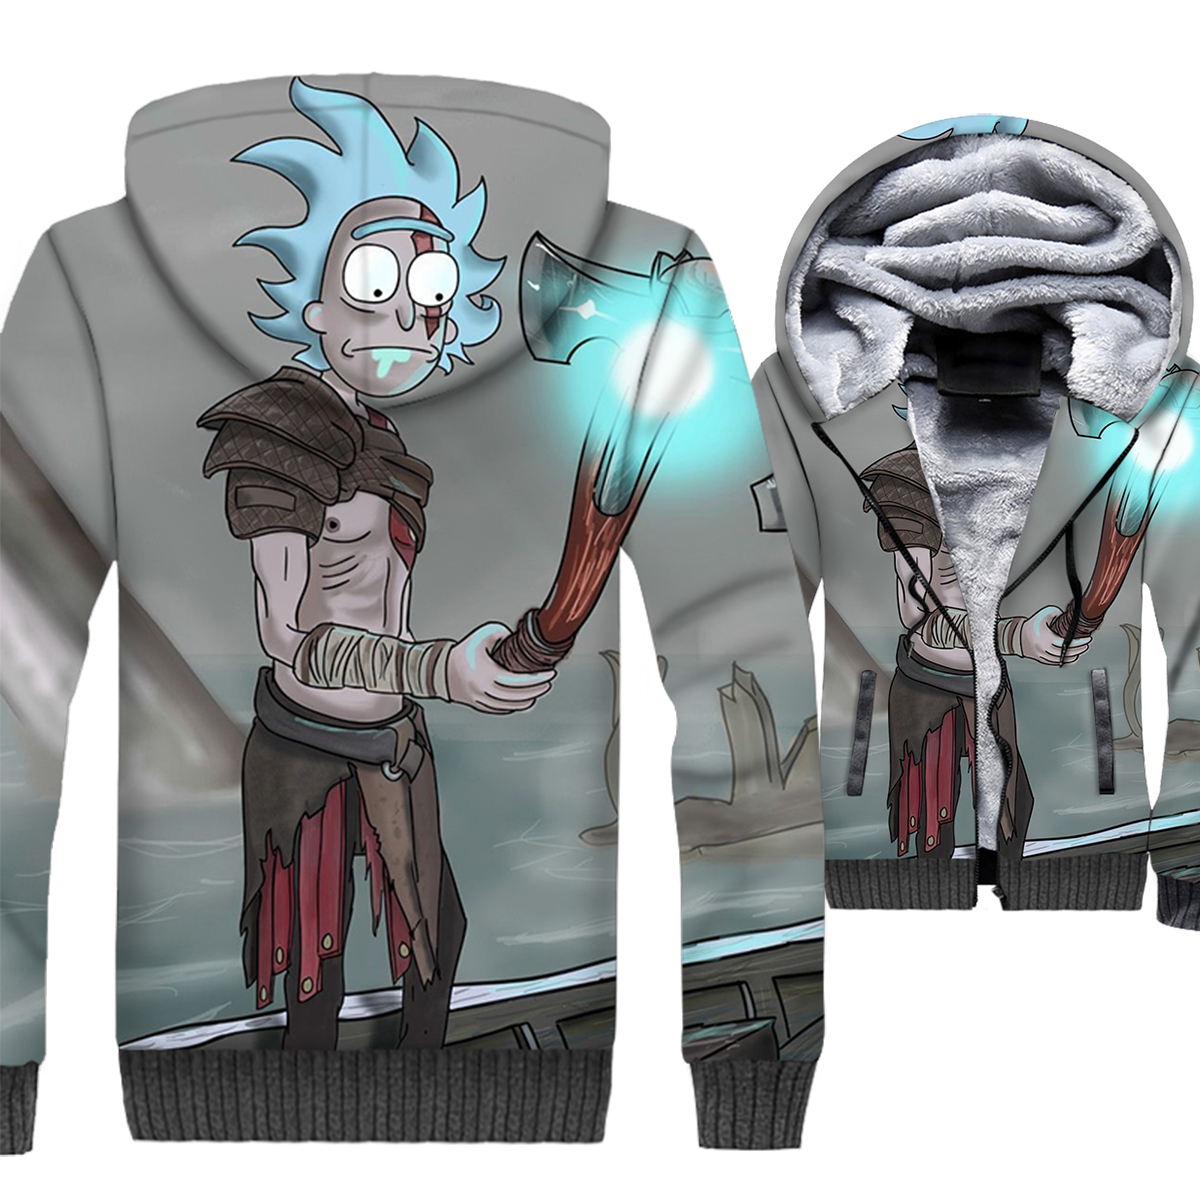 rick and morty jackets for men hispter 3D Printing tracksuits 2019 winter hip-hop brand clothes casual wool liner coats male top